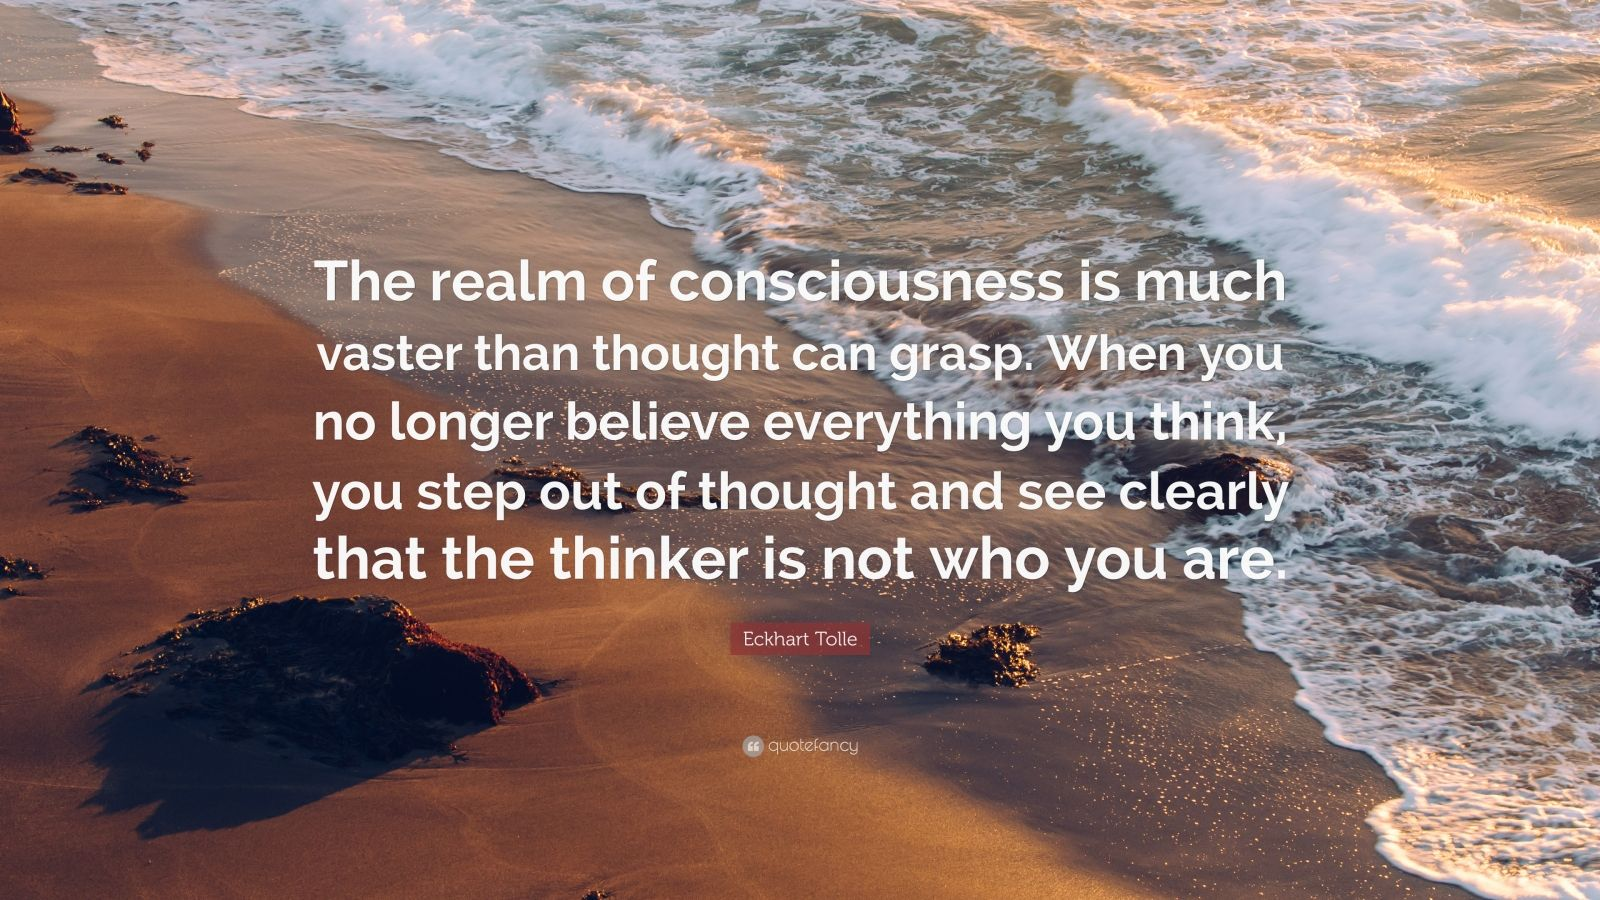 """Eckhart Tolle Quote: """"The realm of consciousness is much vaster than thought can grasp. When you no longer believe everything you think, you step out of thought and see clearly that the thinker is not who you are."""""""